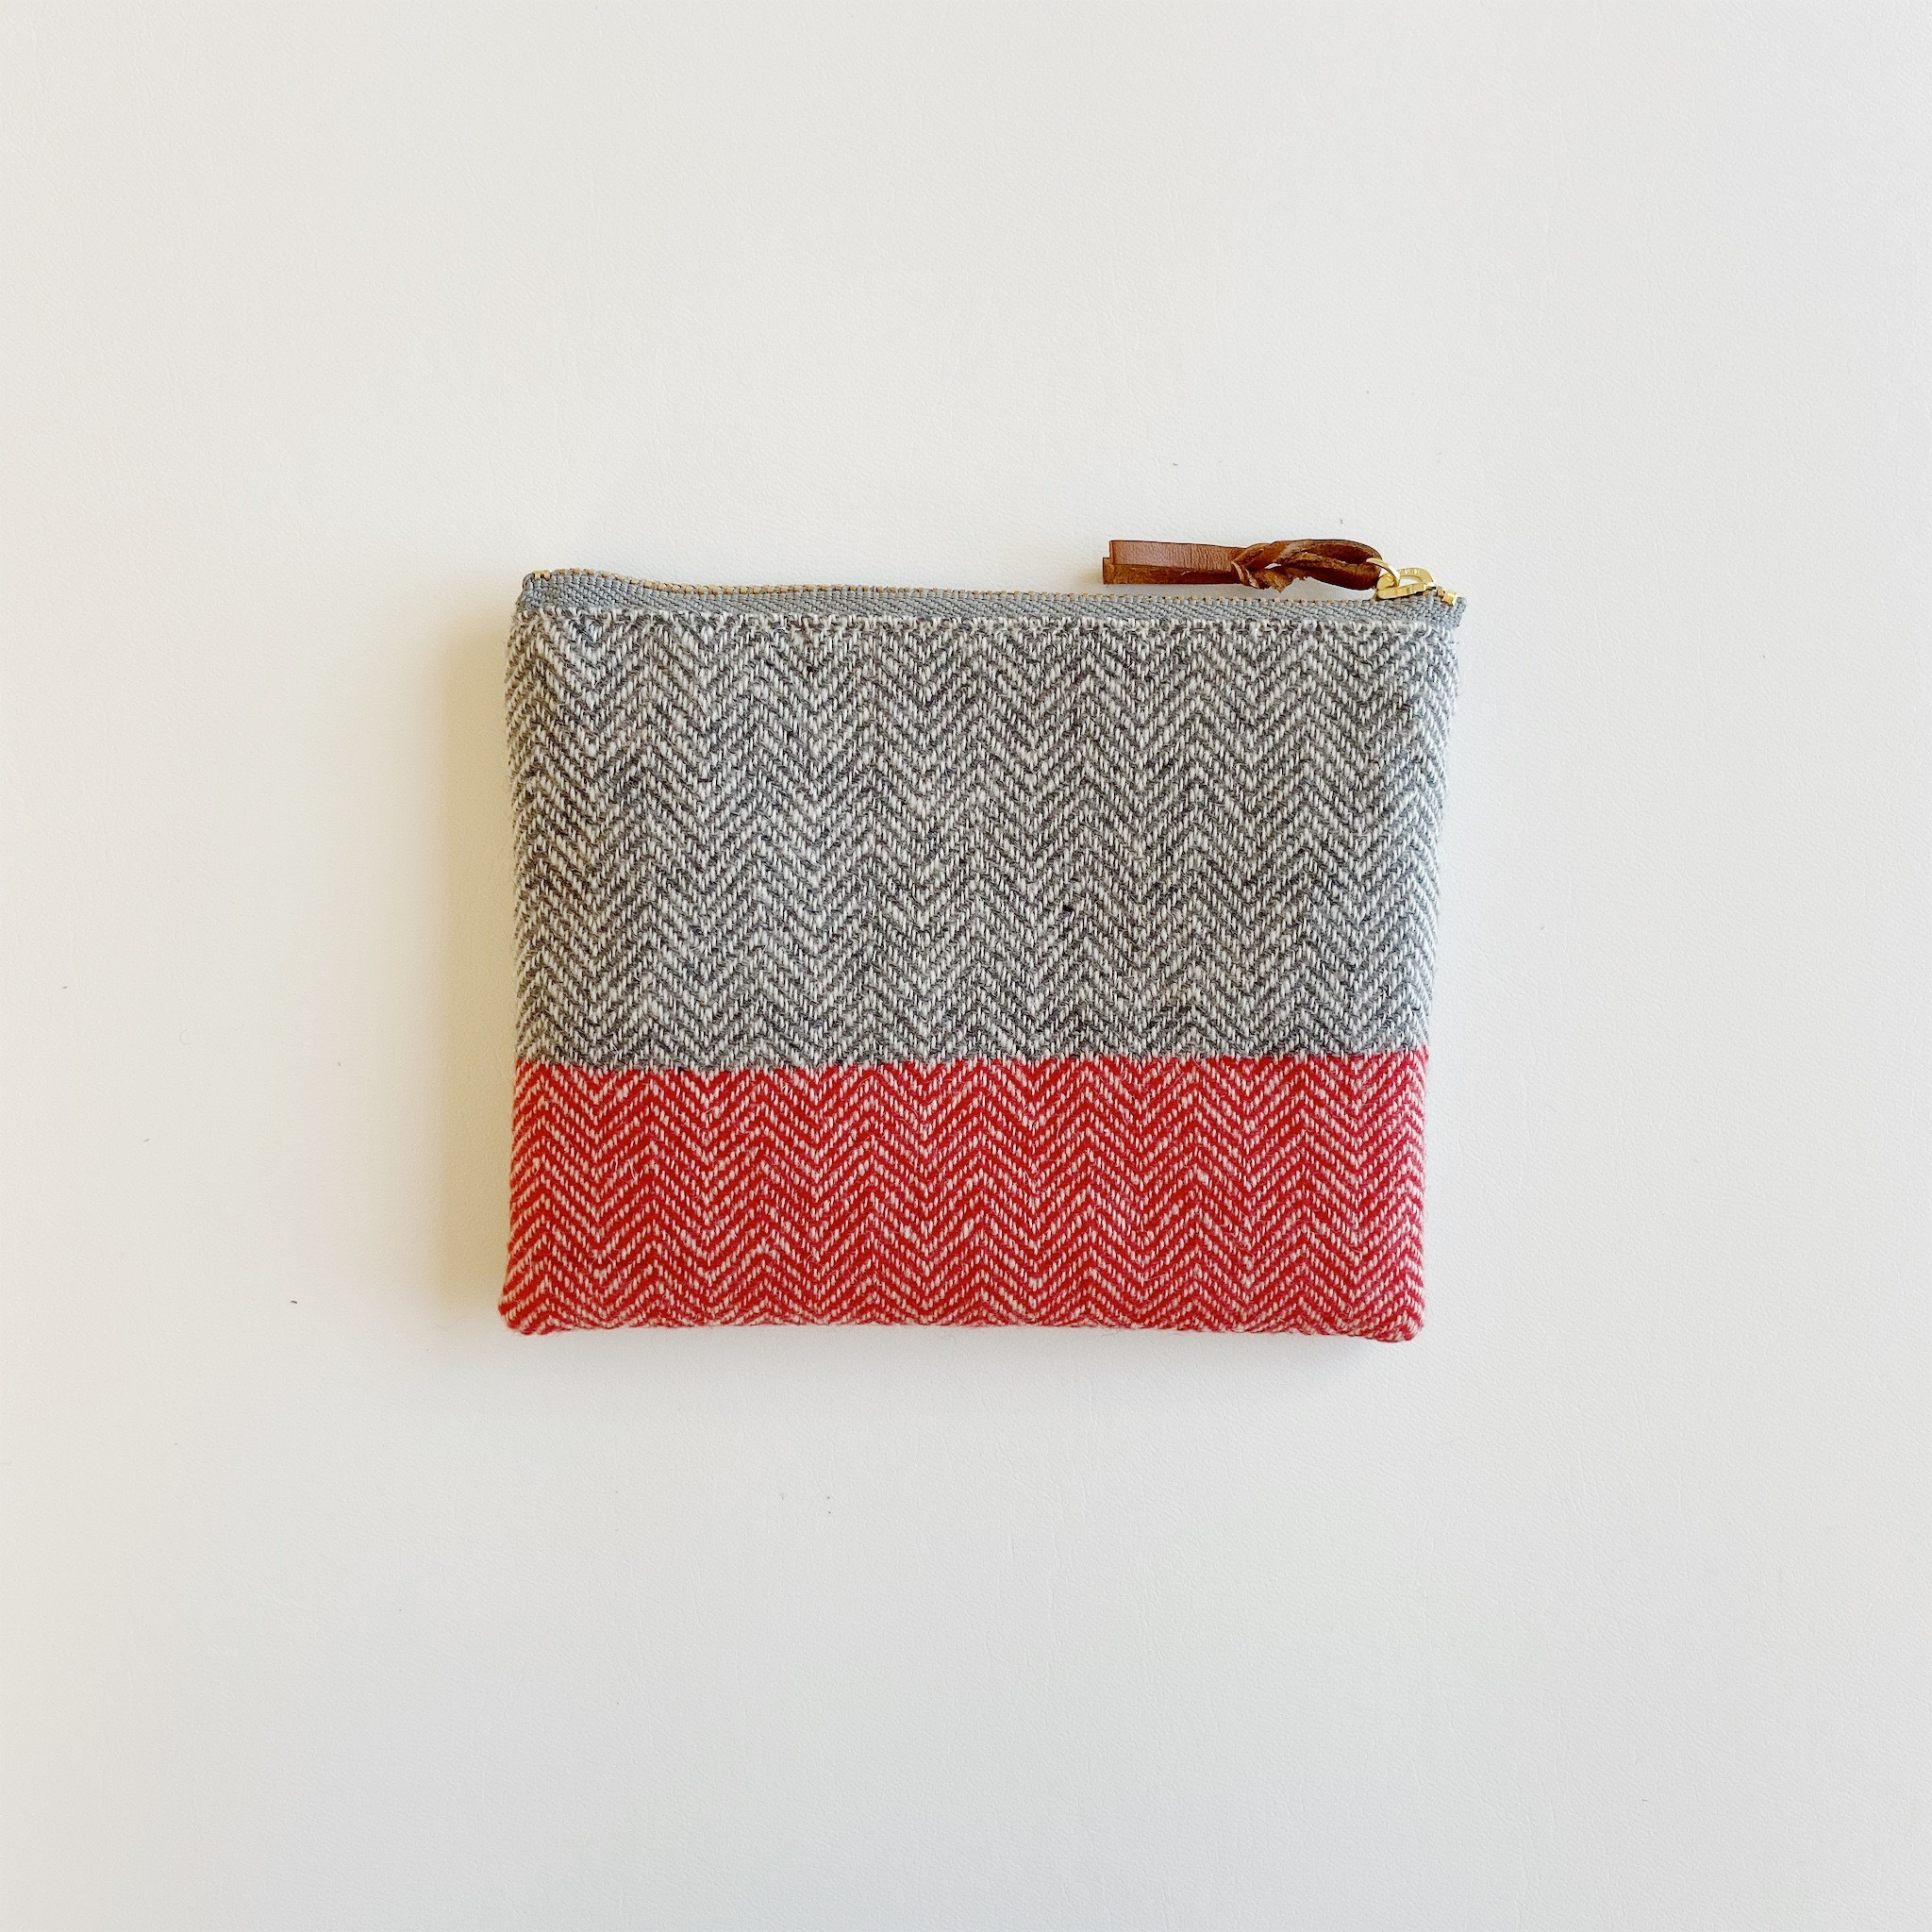 手織りミニポーチ(Accessory case Cashmere herringbone)